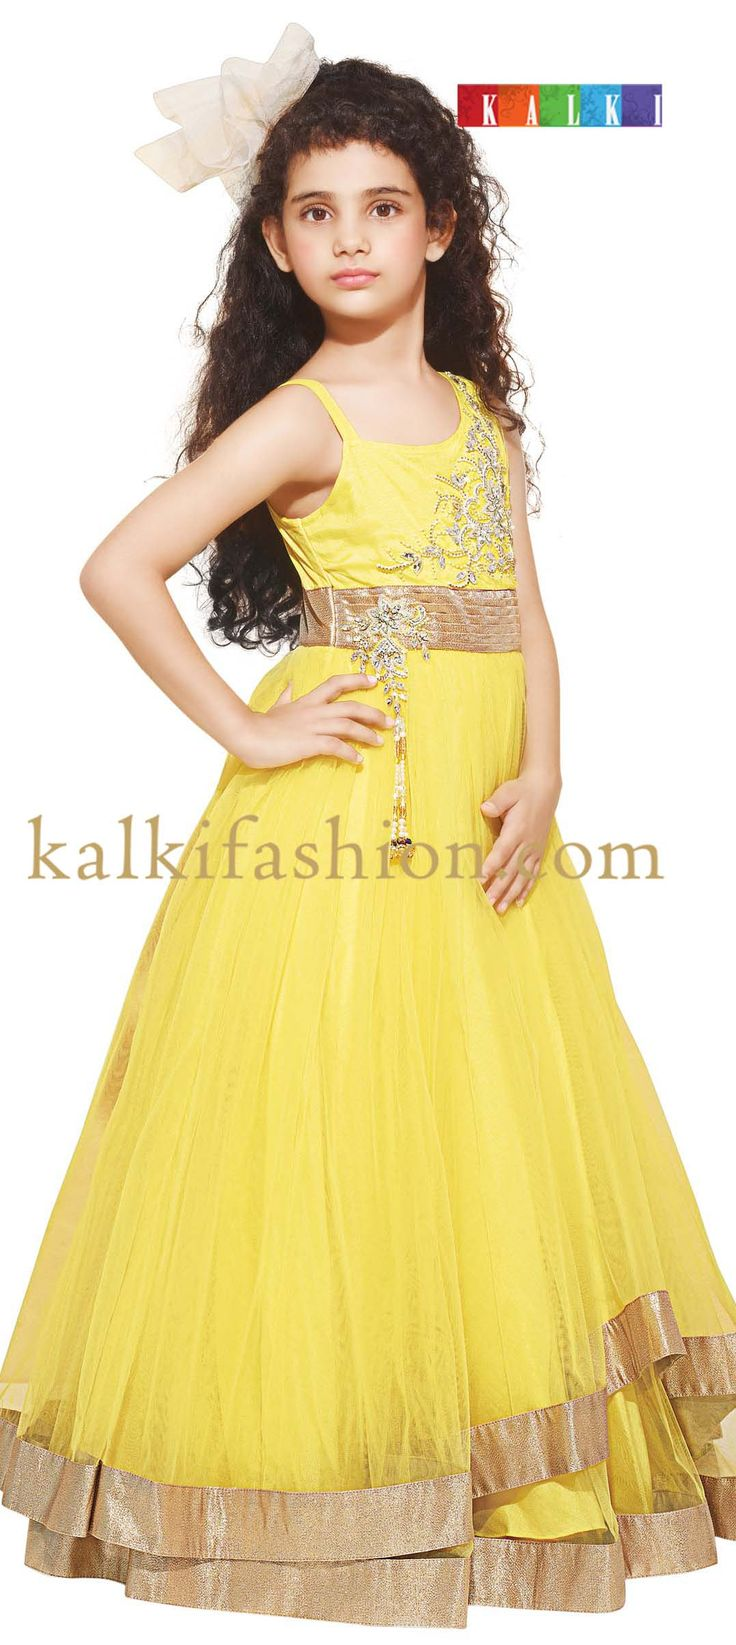 Buy it now  http://www.kalkifashion.com/yellow-gown-with-double-frills.html  Yellow gown with double frills